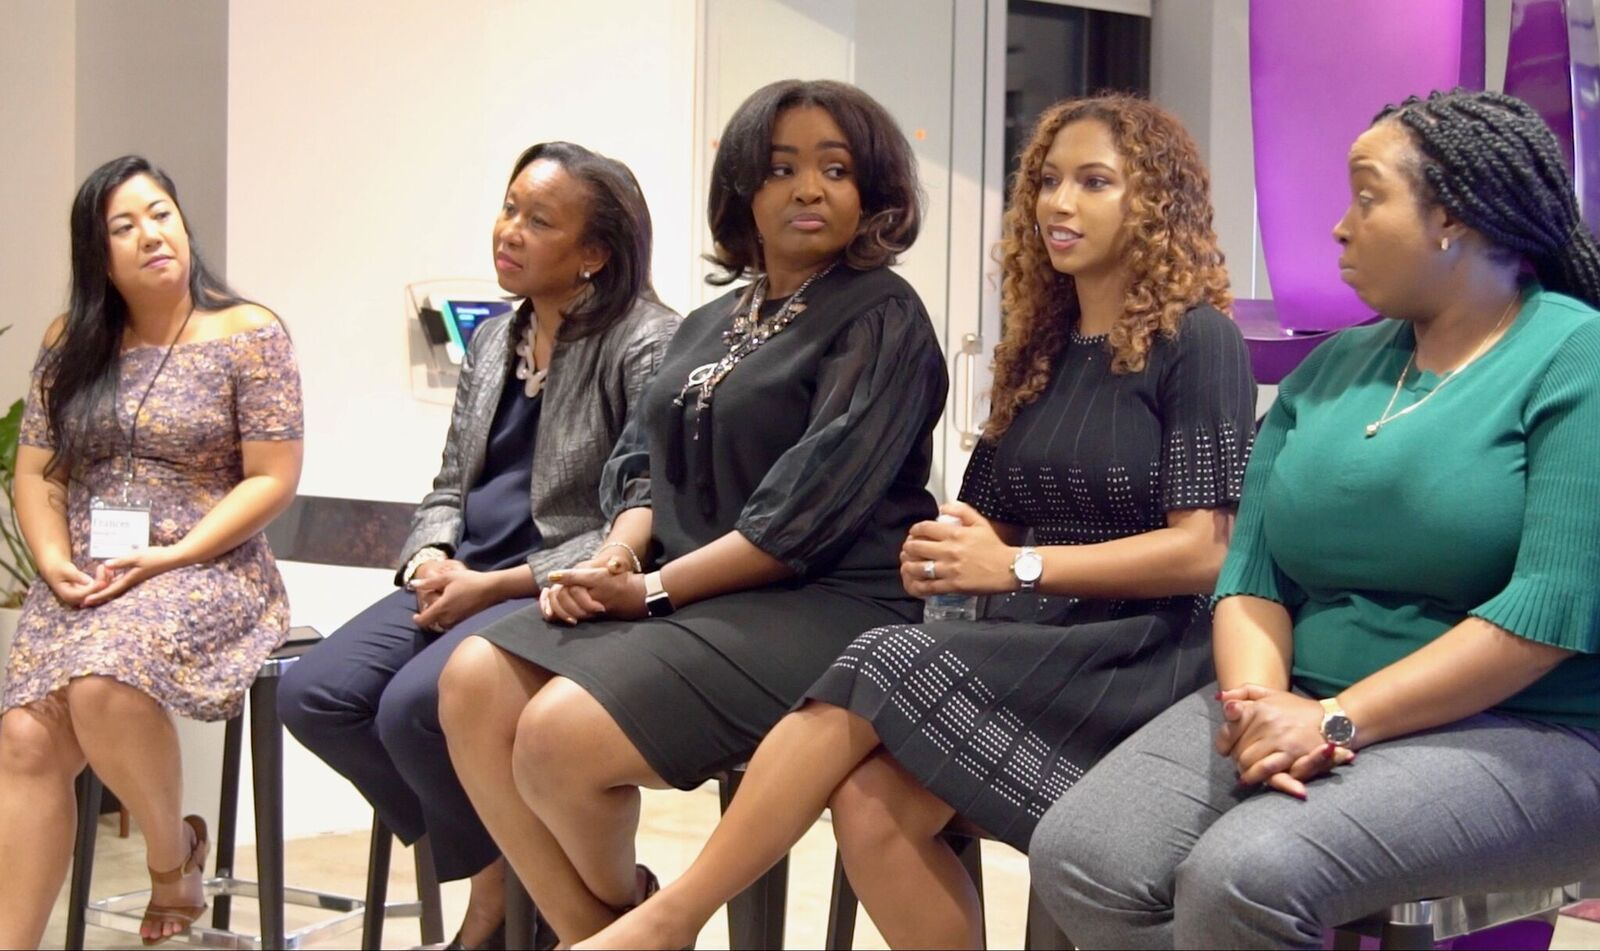 From left to right: Frances Melegrito, Diversity & Inclusion Yelp, Rose-Ann Tifre, Account Director of Multi-Cultural Strategy at Pandora, Christen James, COO of Council of Urban Professionals, Angelina Darrisaw Cheeks, CEO & Founder of C-Suite Coach, and Alicia Simmons, Recruiting Manager at Wiley Publishing.